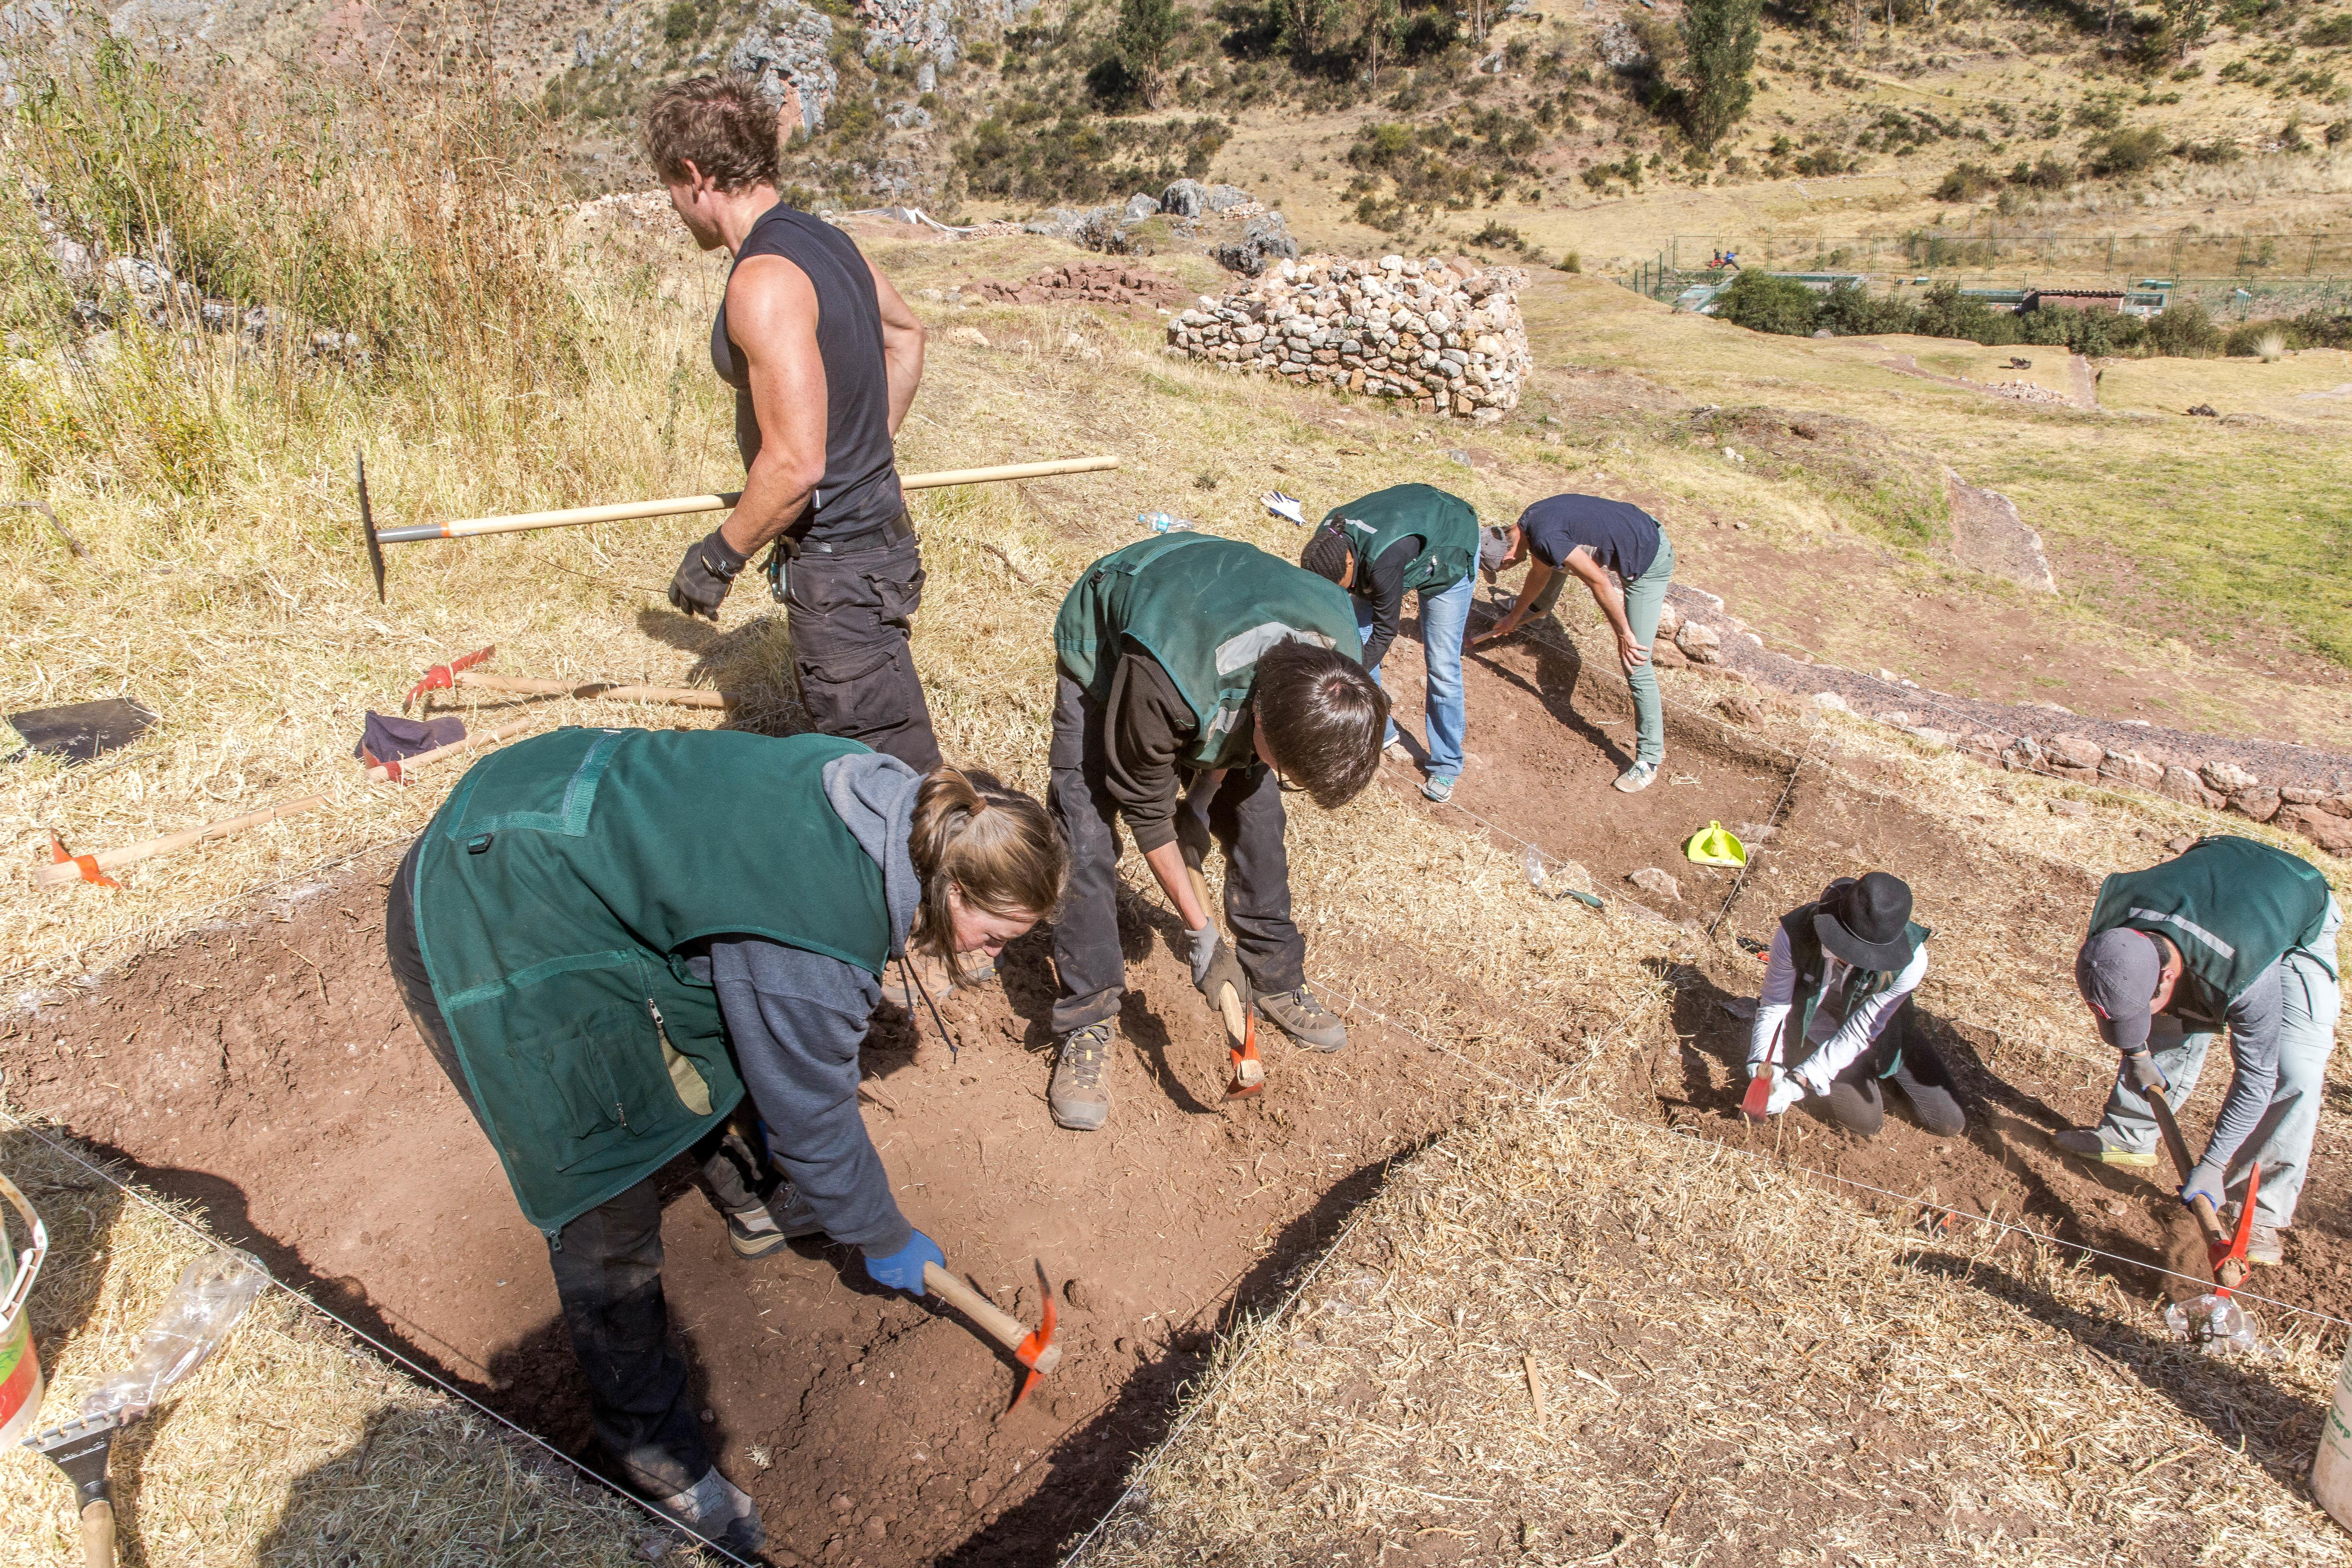 Projects Abroad volunteers are seen participating in an excavation project whilst on their archaeology volunteering in Peru.